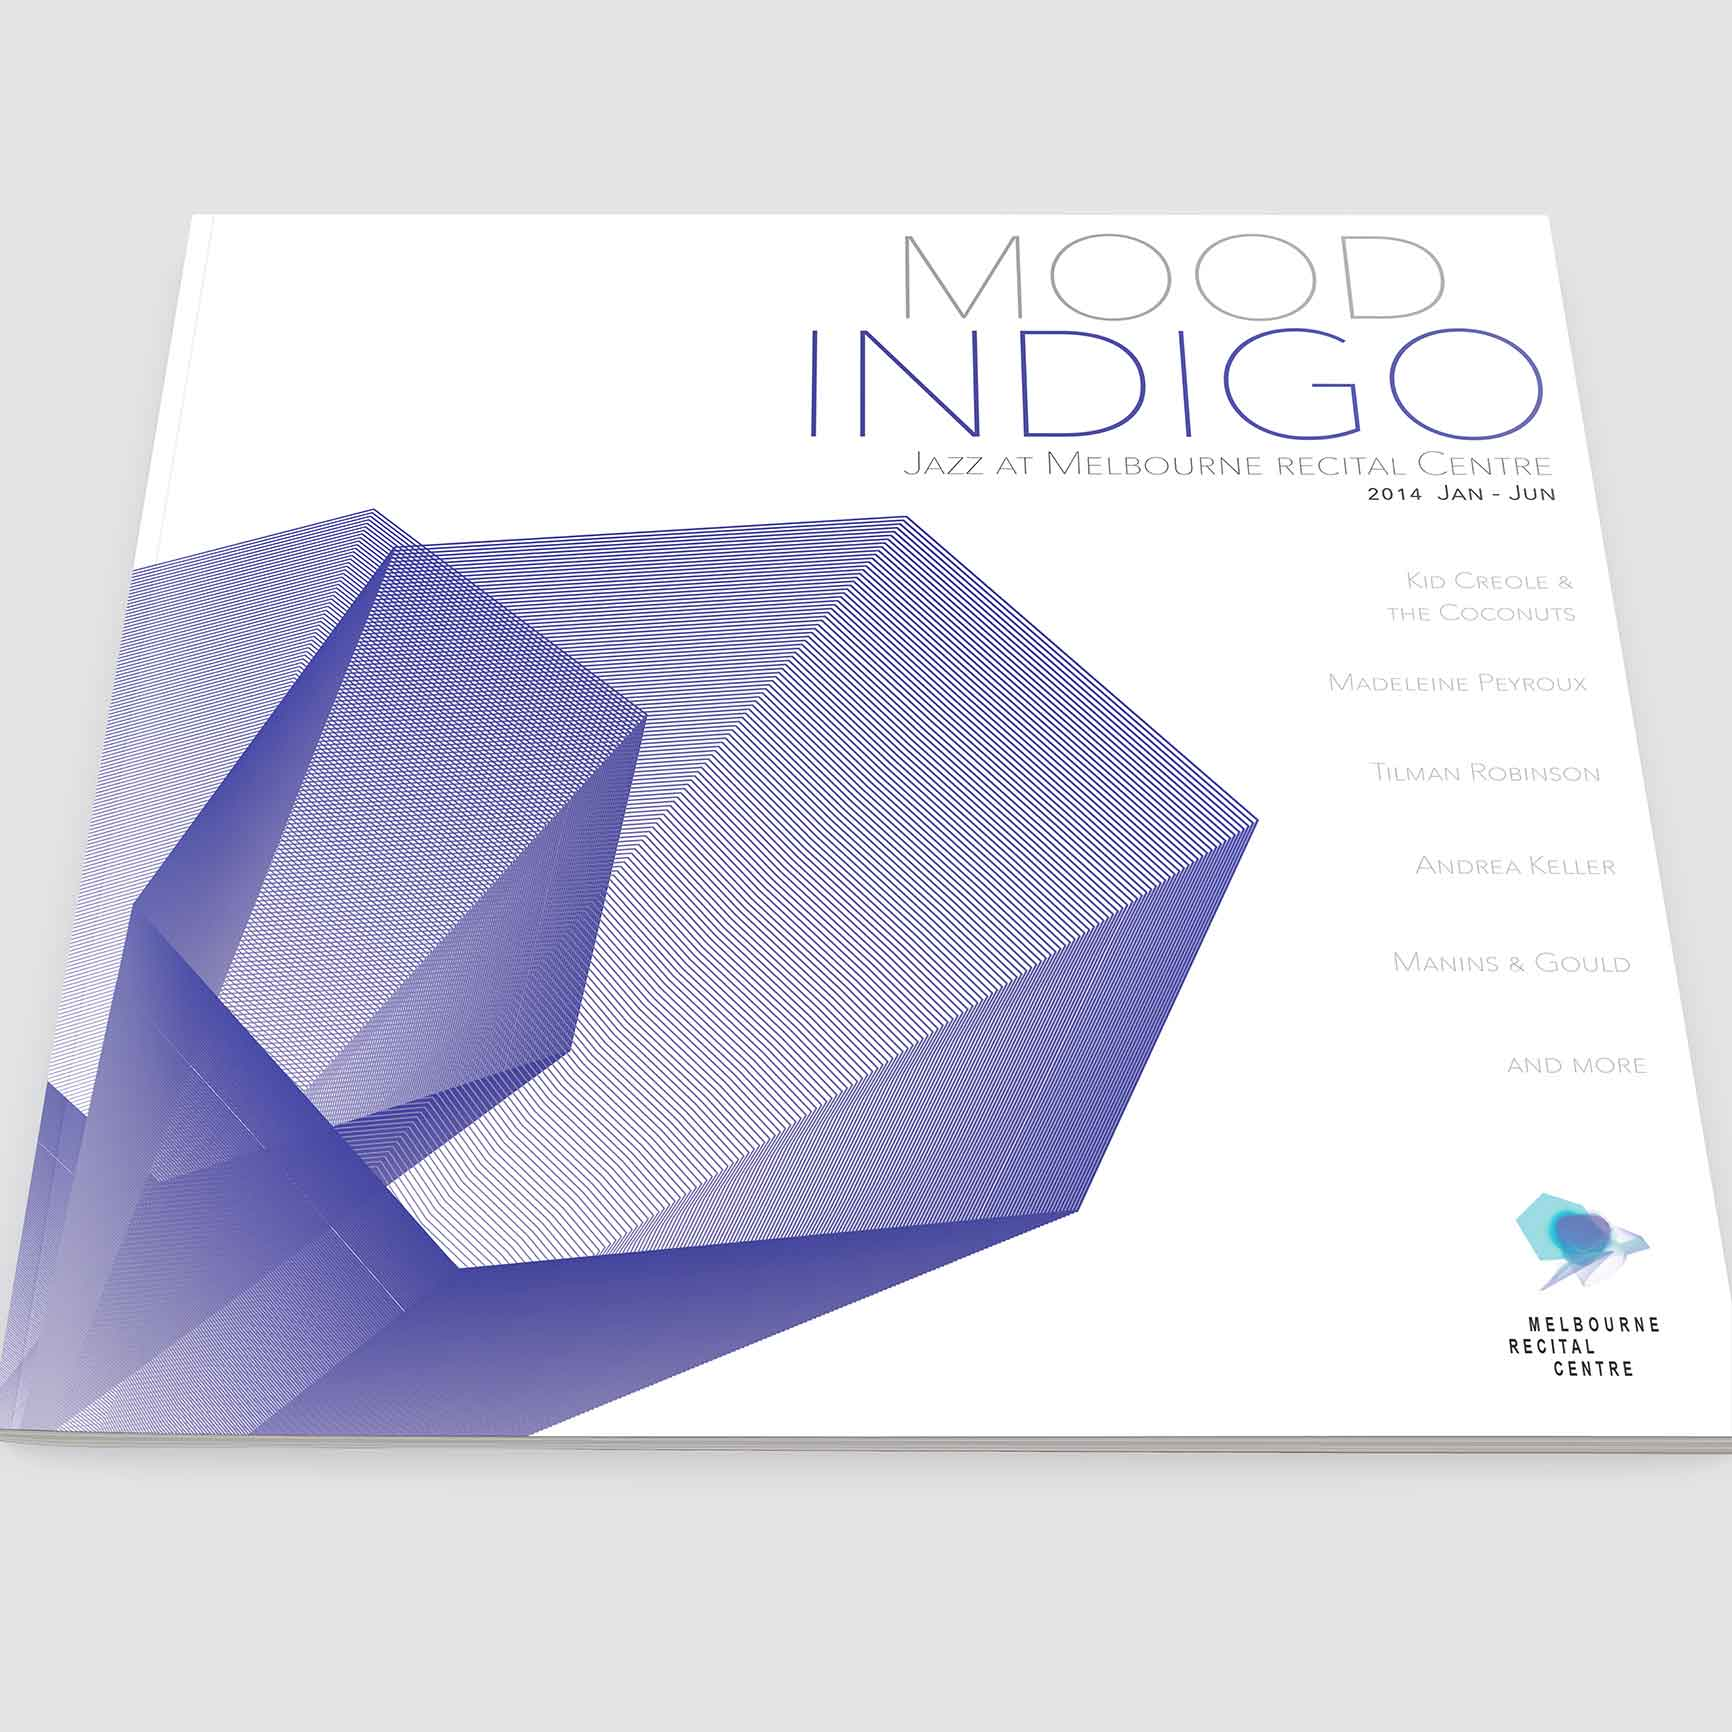 Melbourne Recital Centre - Mood Indigo Jazz Festival Program